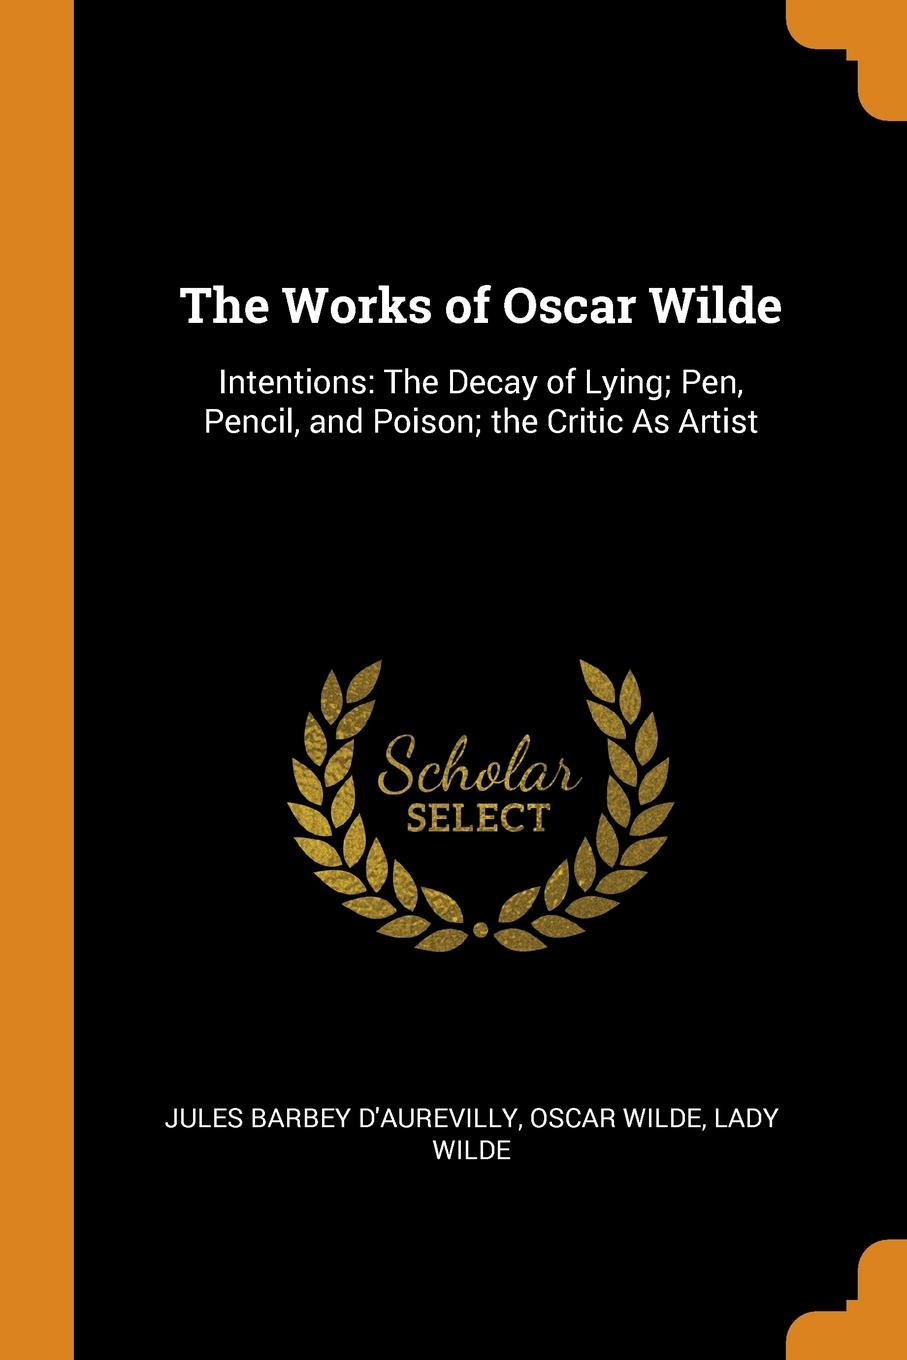 Jules Barbey d'Aurevilly, Oscar Wilde, Lady Wilde The Works of Oscar Wilde. Intentions: The Decay of Lying; Pen, Pencil, and Poison; the Critic As Artist oscar wilde the ballad of reading gaol a poetry